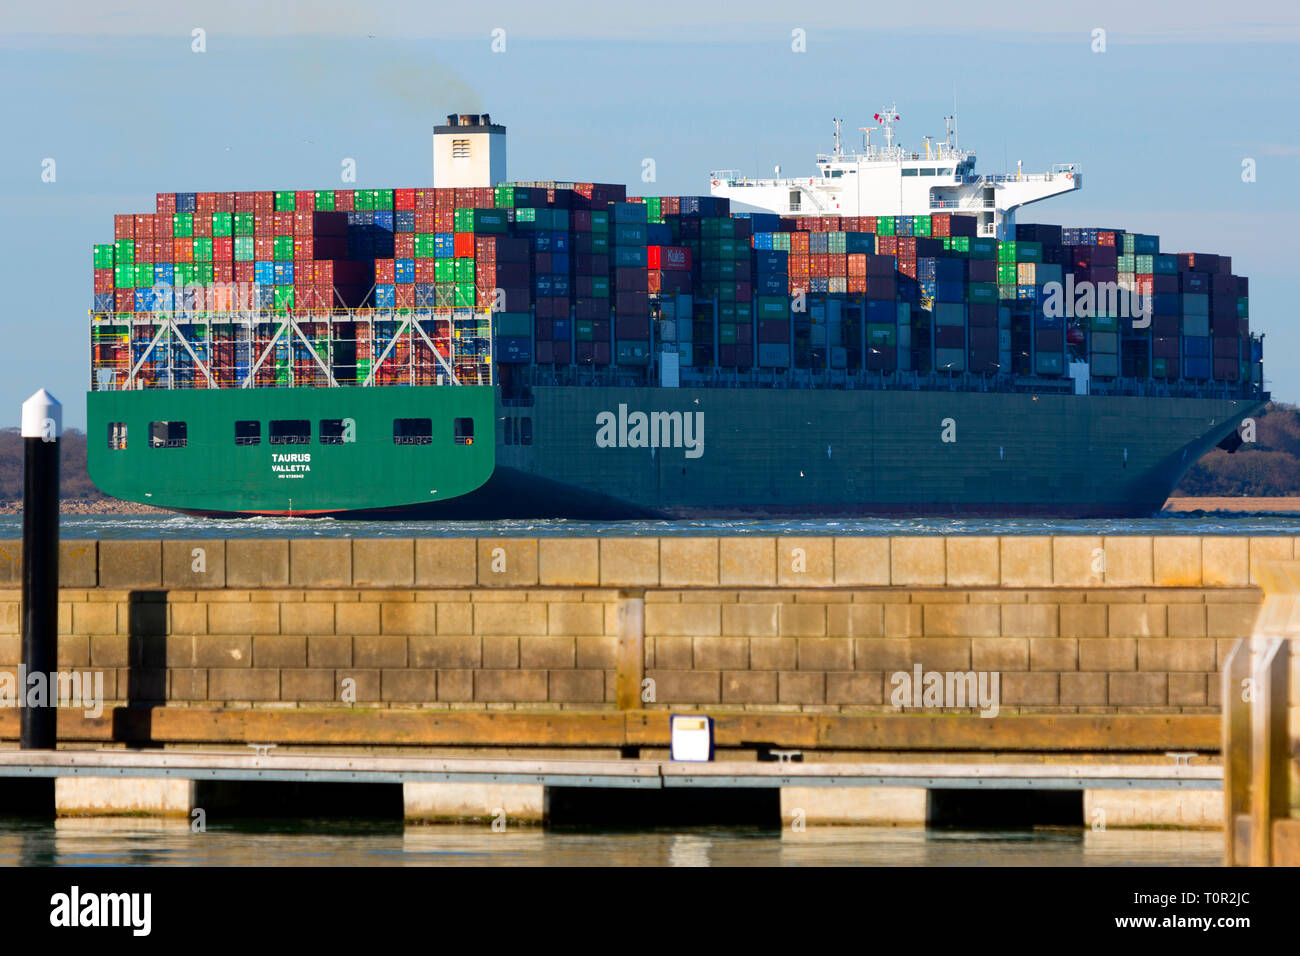 Taurus,Valletta,registered,Container Ship in The Solent,heading towards Southampton,terminal, off Cowes, isle of Wight, England,UK, - Stock Image